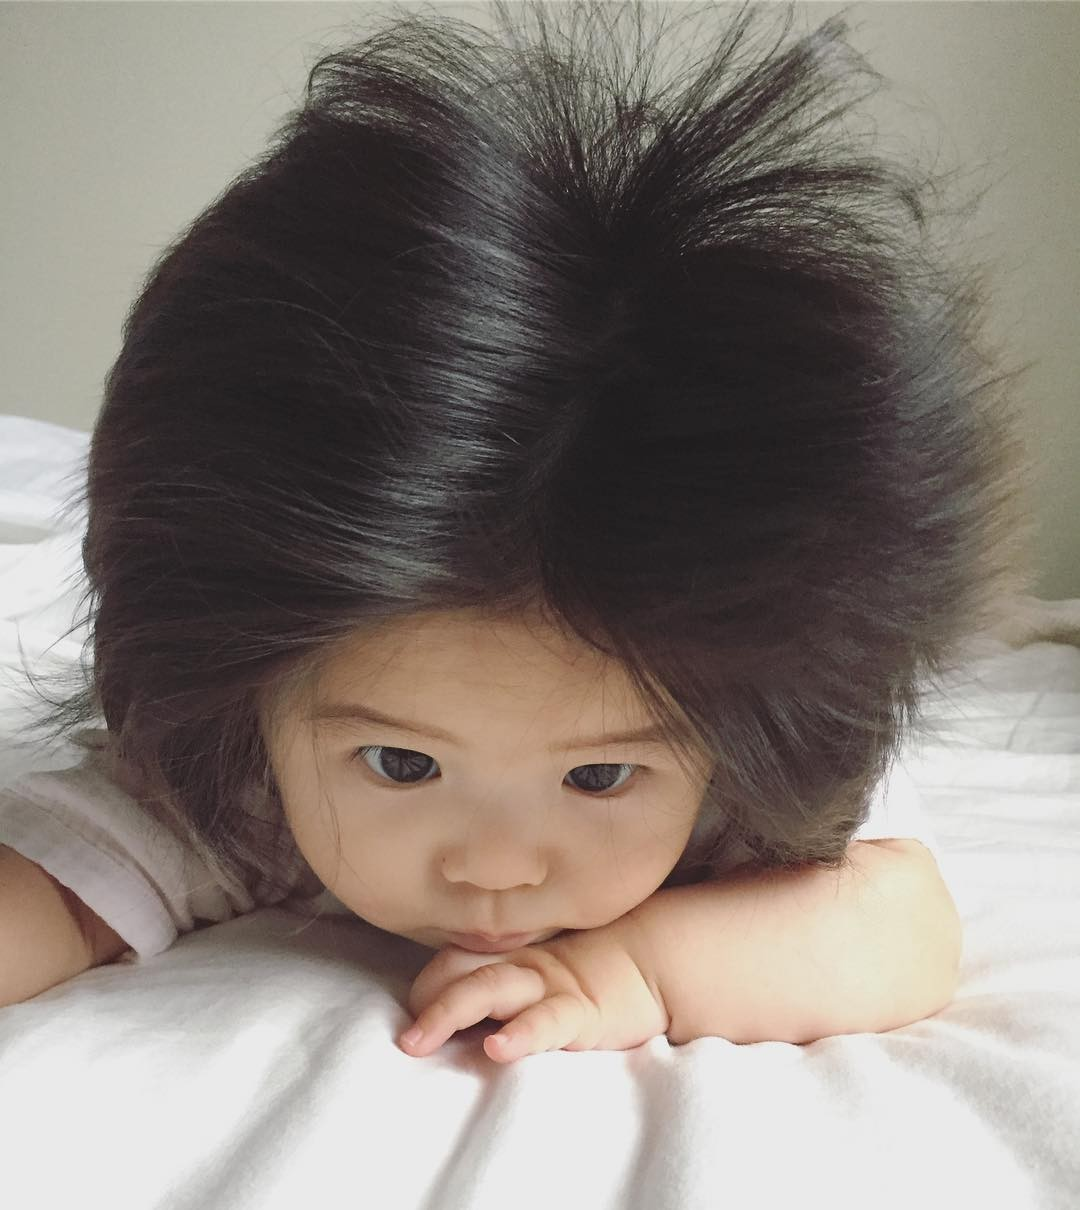 A baby with husky hair in six months of age talks about